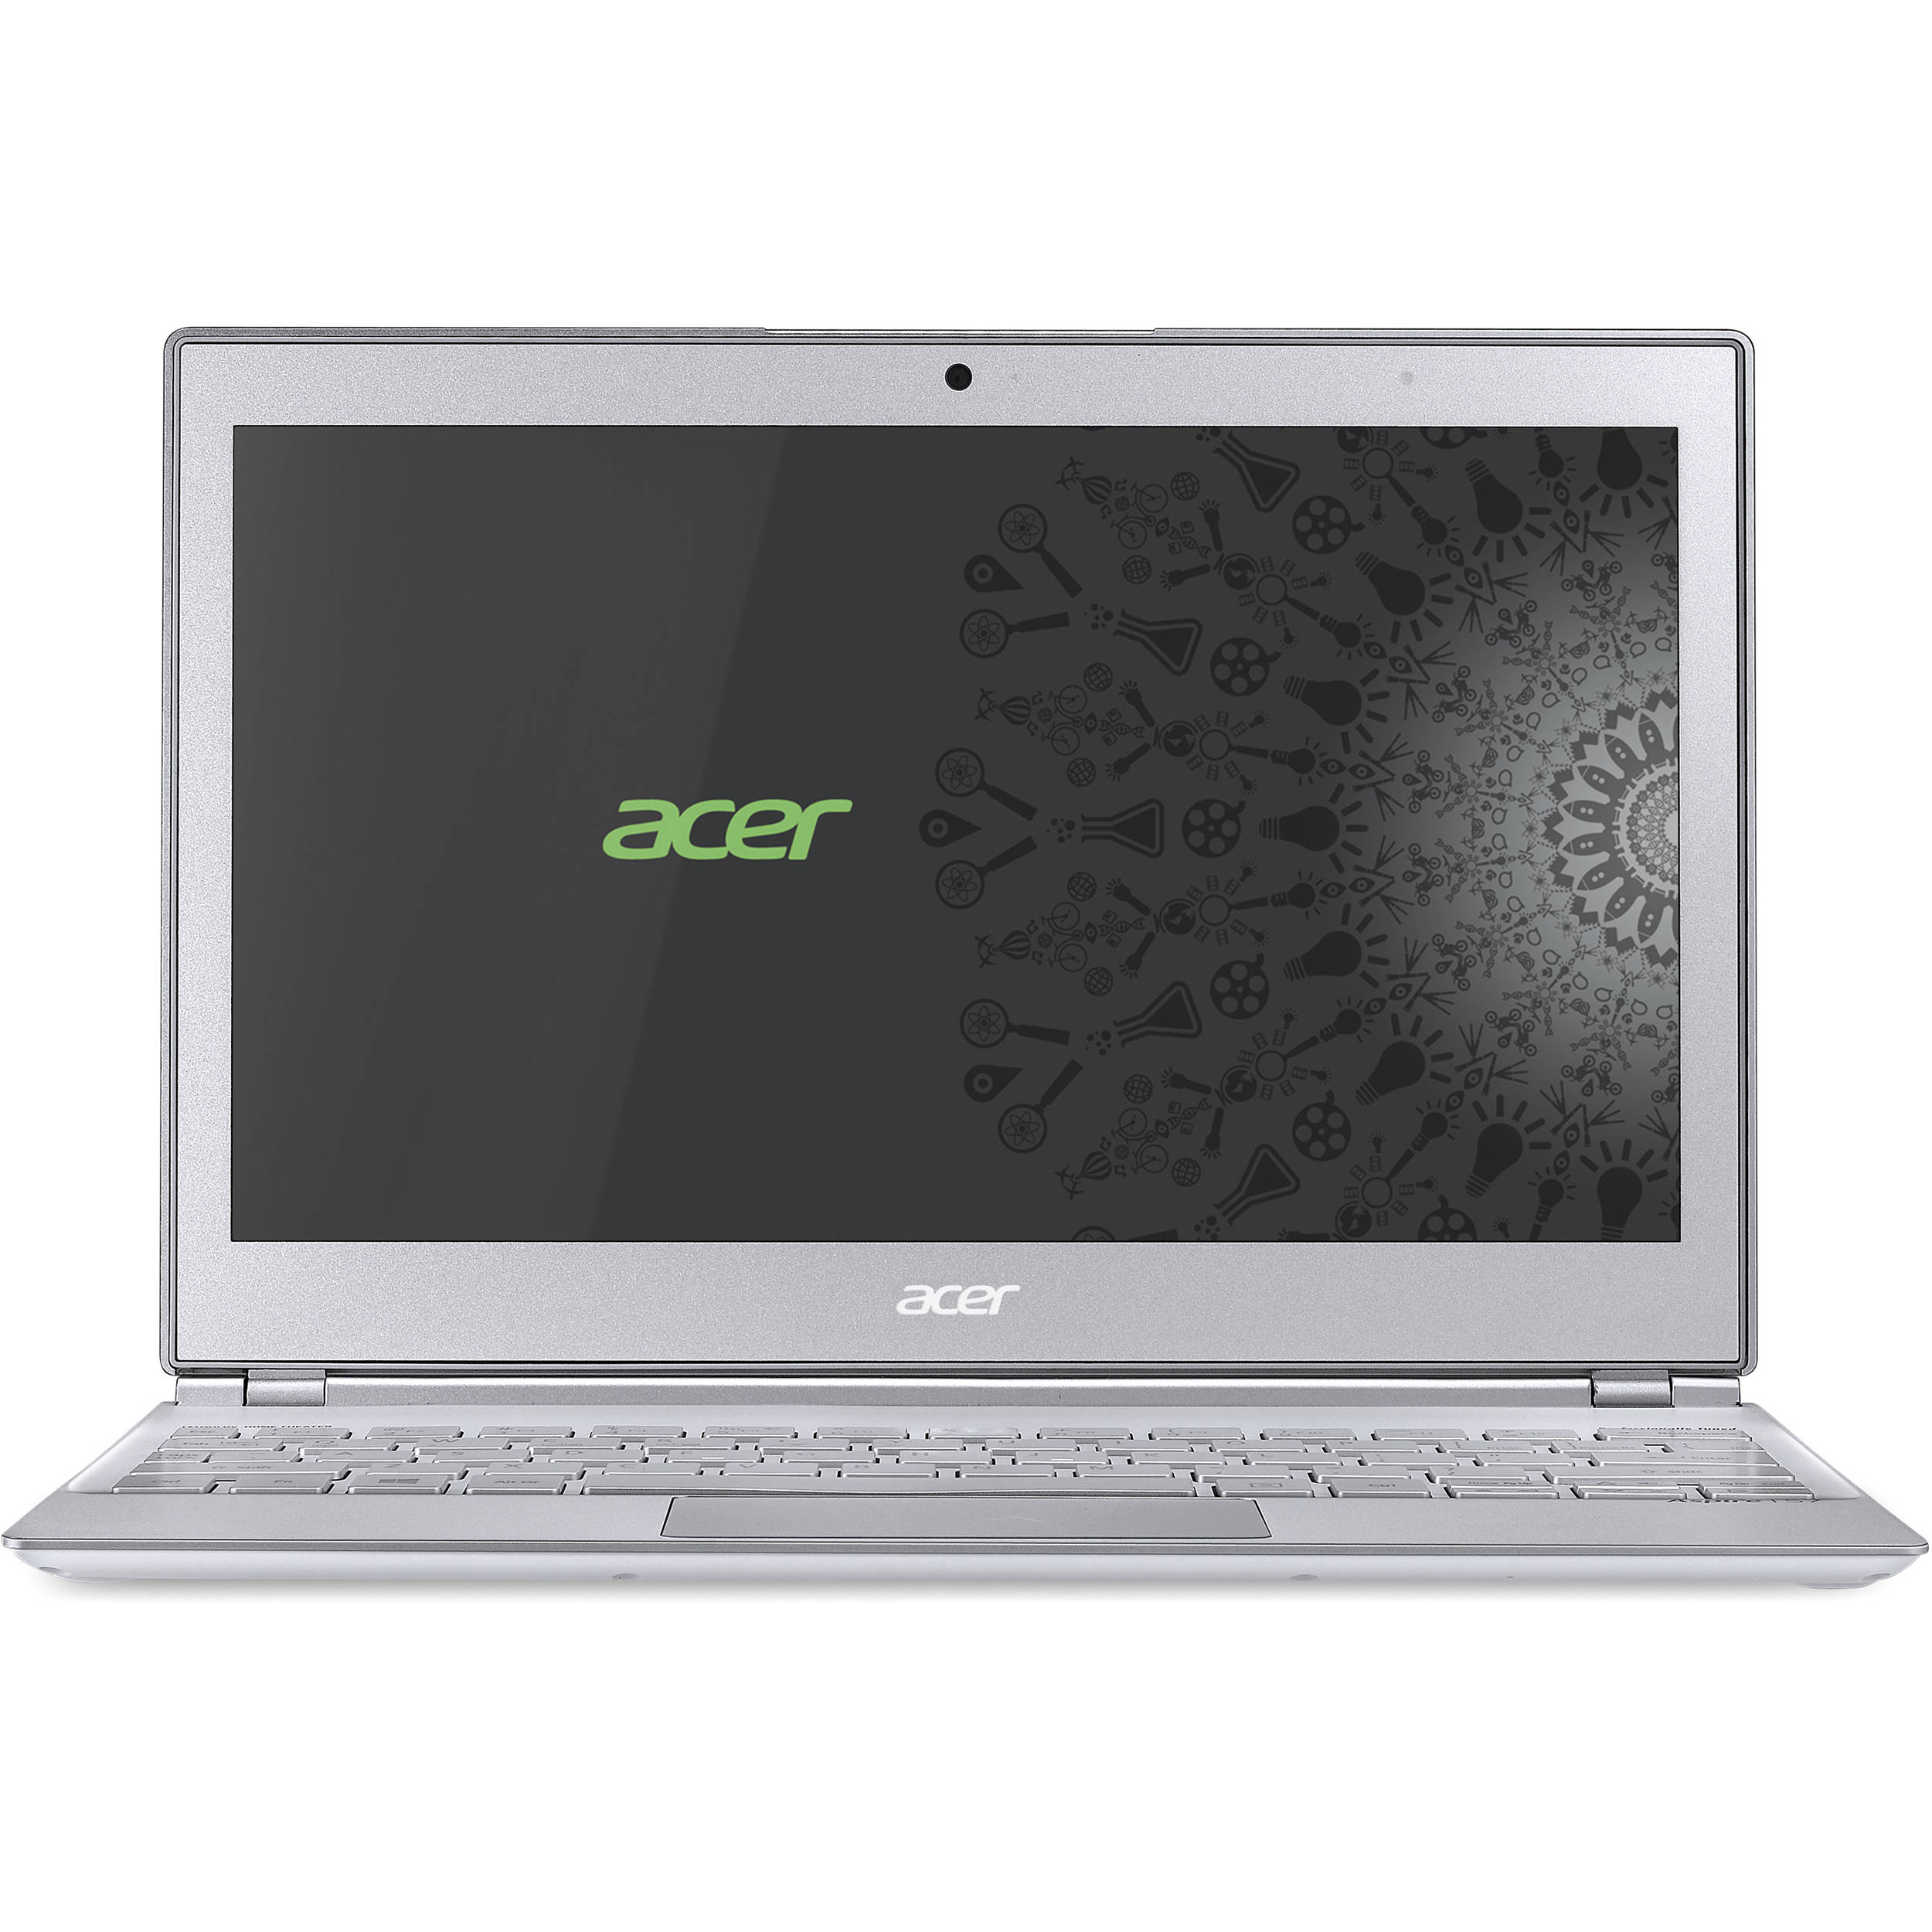 "Acer 11.6"" Intel Core i5 1.8 GHz 4 GB Ram 128GB SSD Windo..."